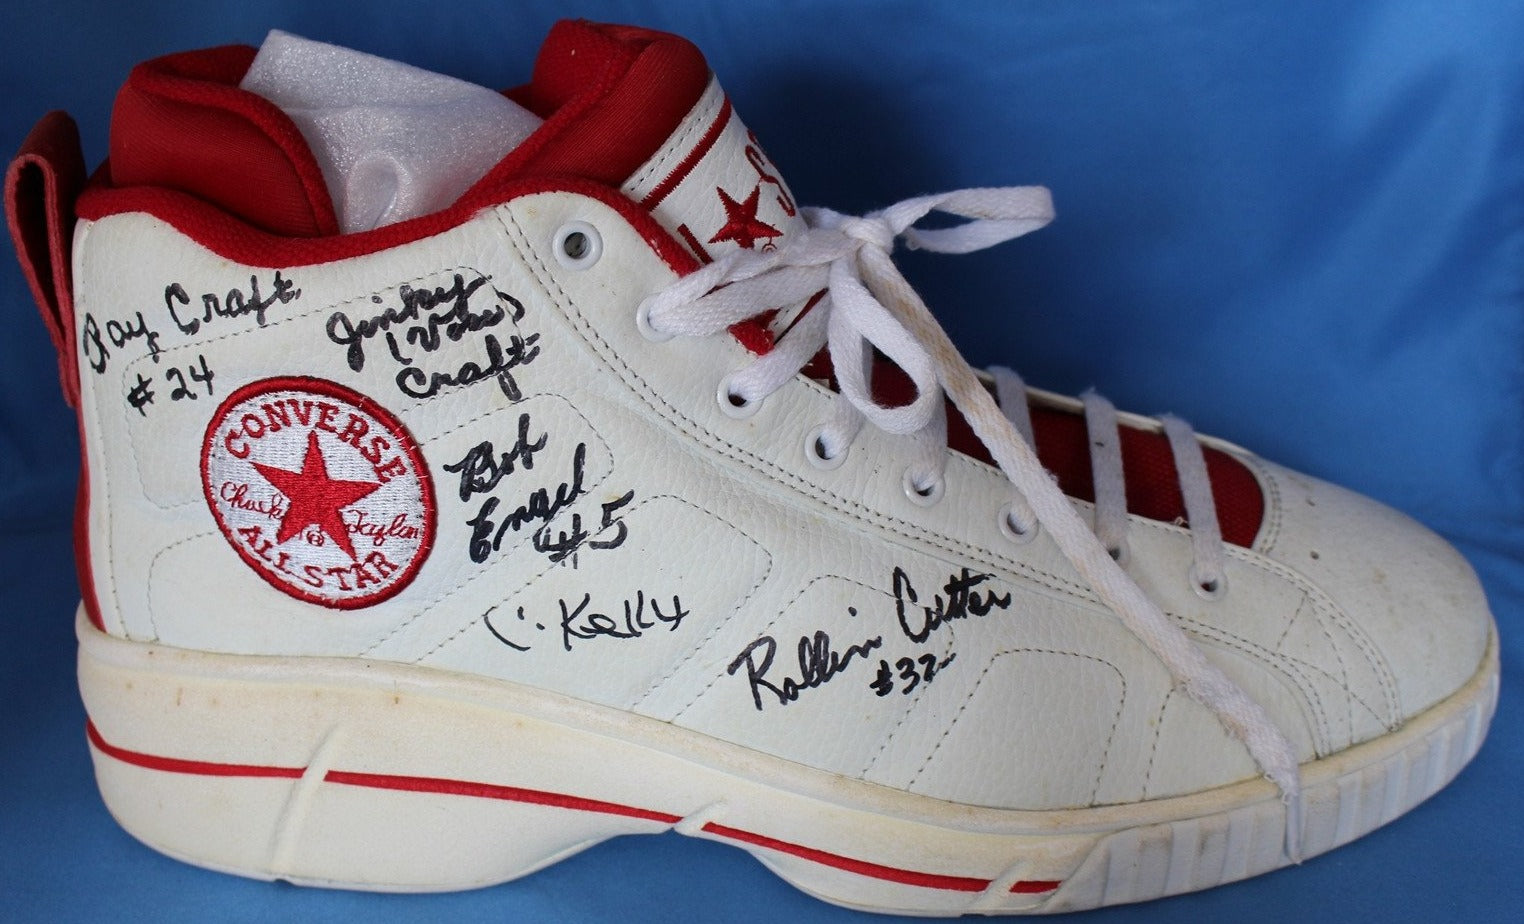 1954 Milan High School Basketball Team Signed Converse Shoe - Vintage Indy Sports